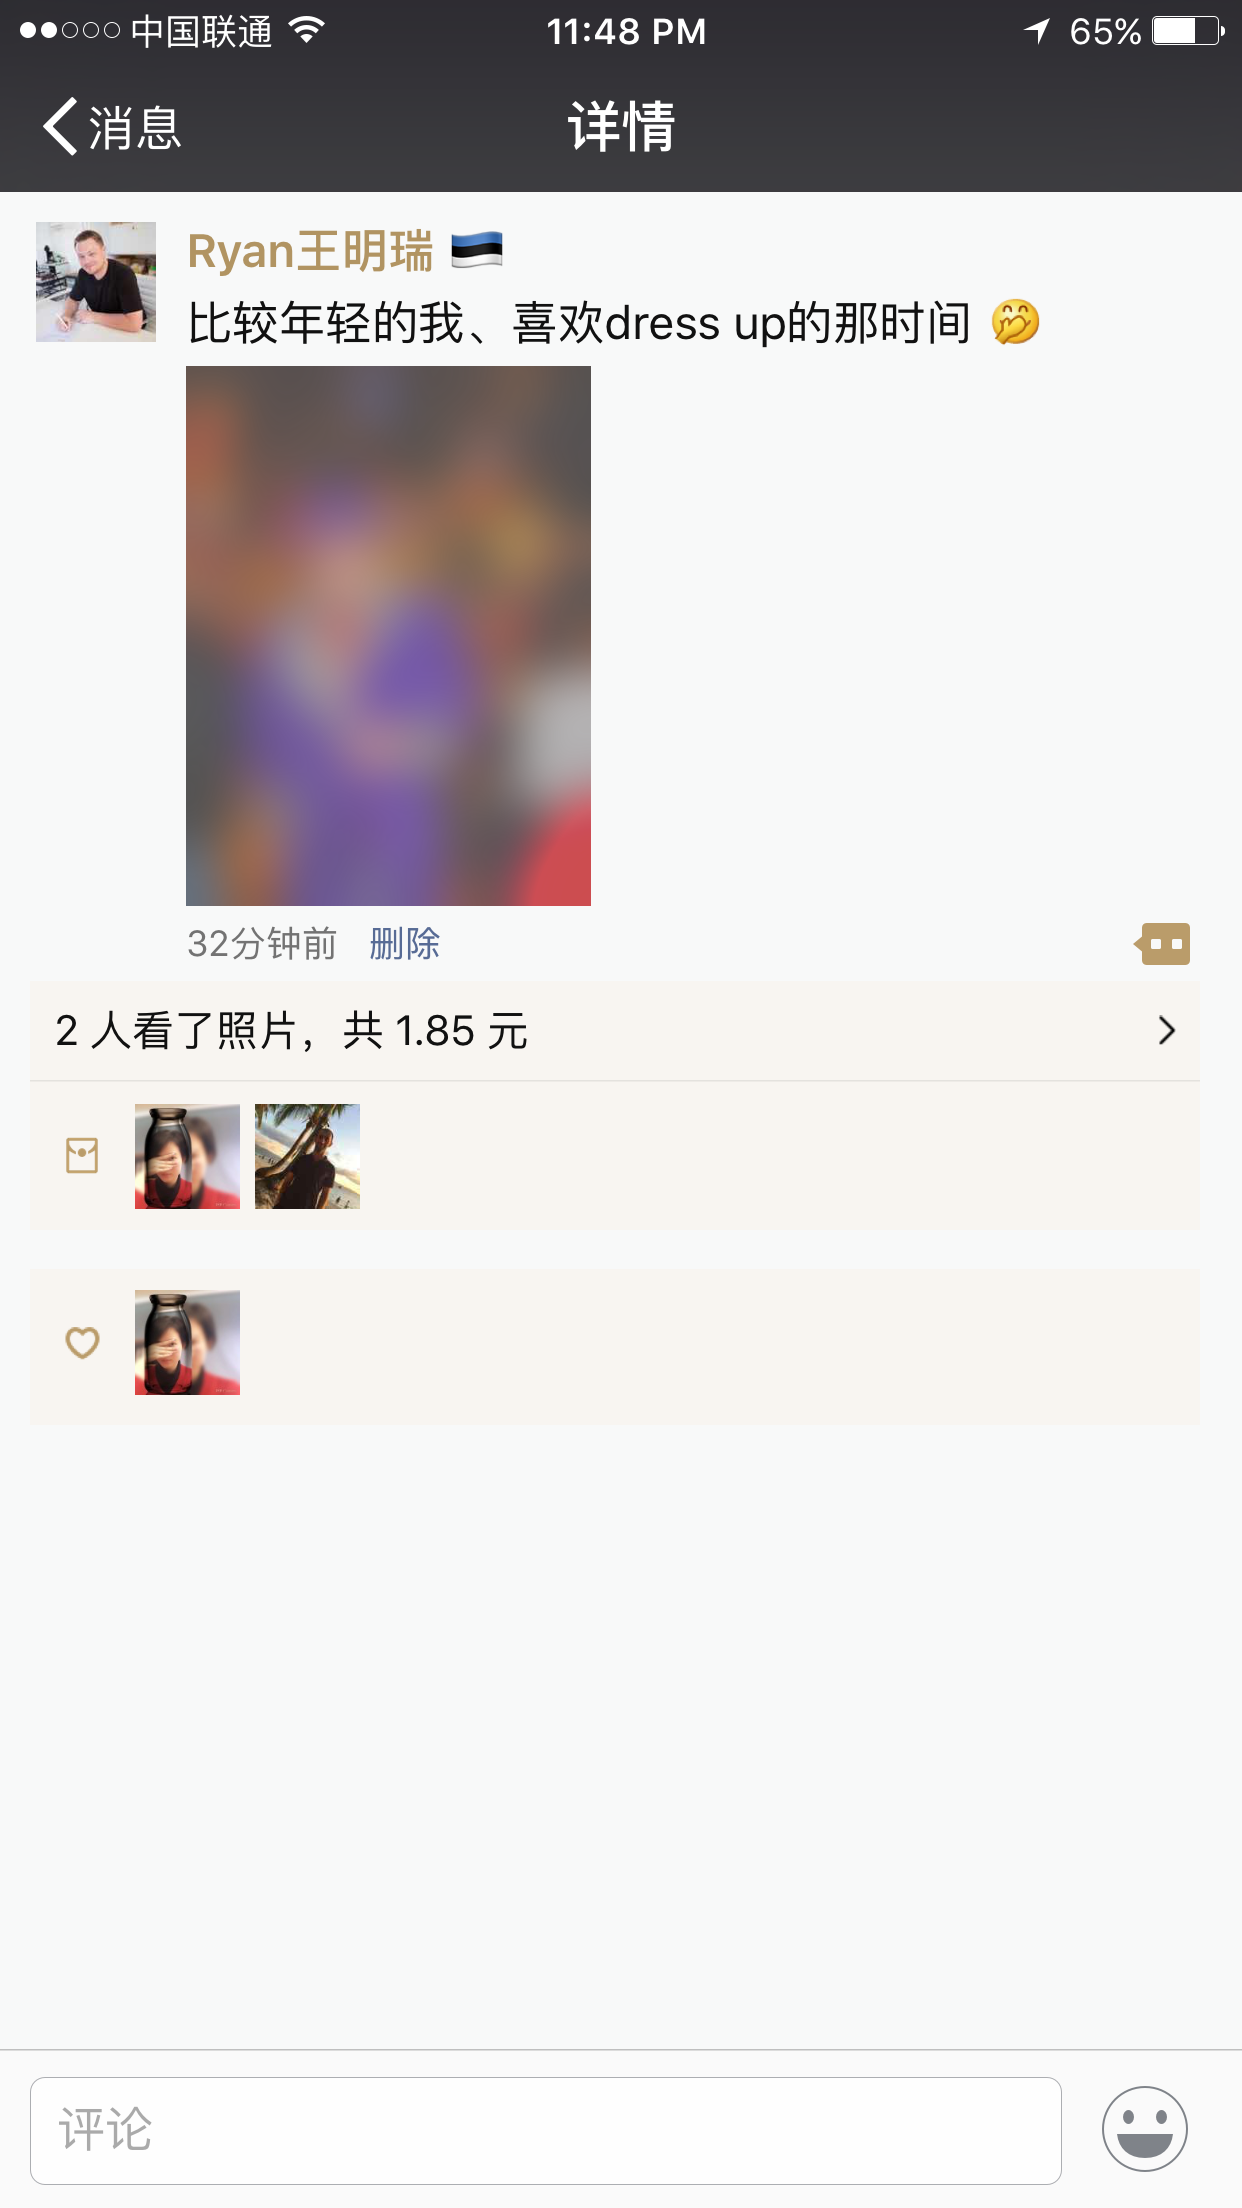 The (Short) Tale of My Blurry WeChat Photo - Ryan King